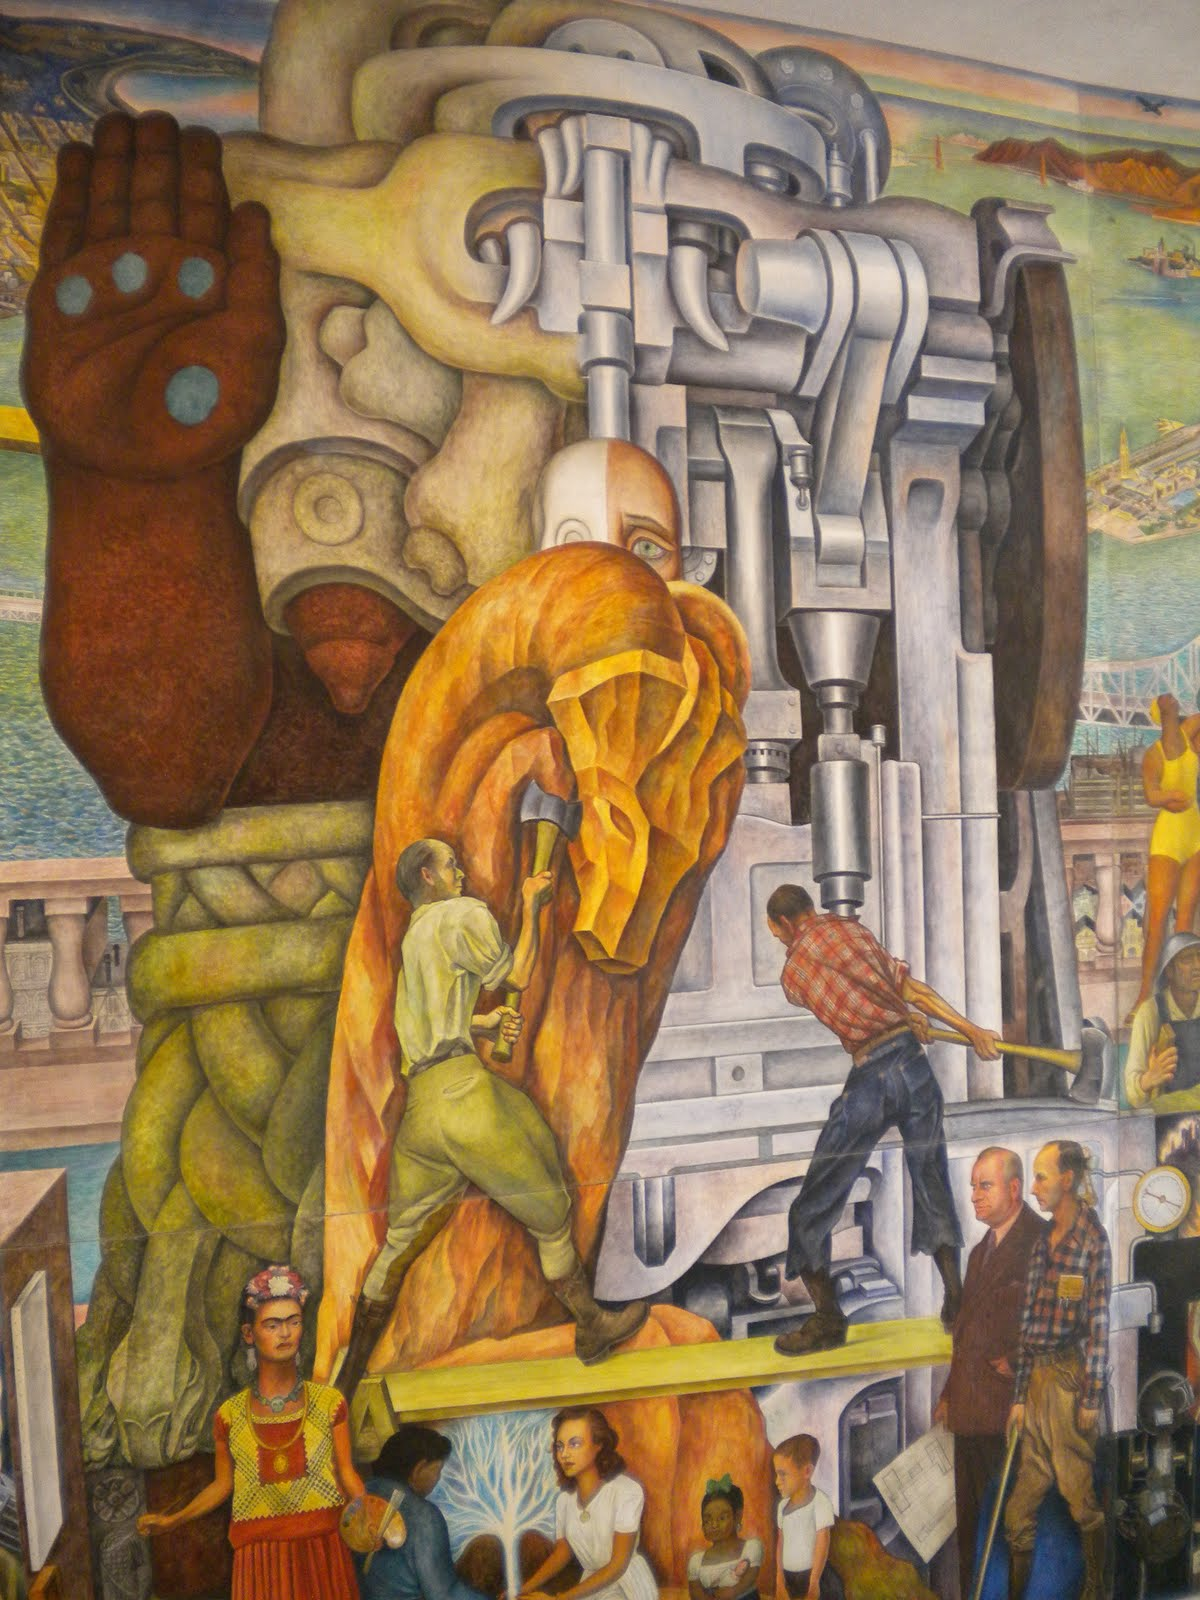 Murals diego rivera san francisco usa art for Diego rivera san francisco mural